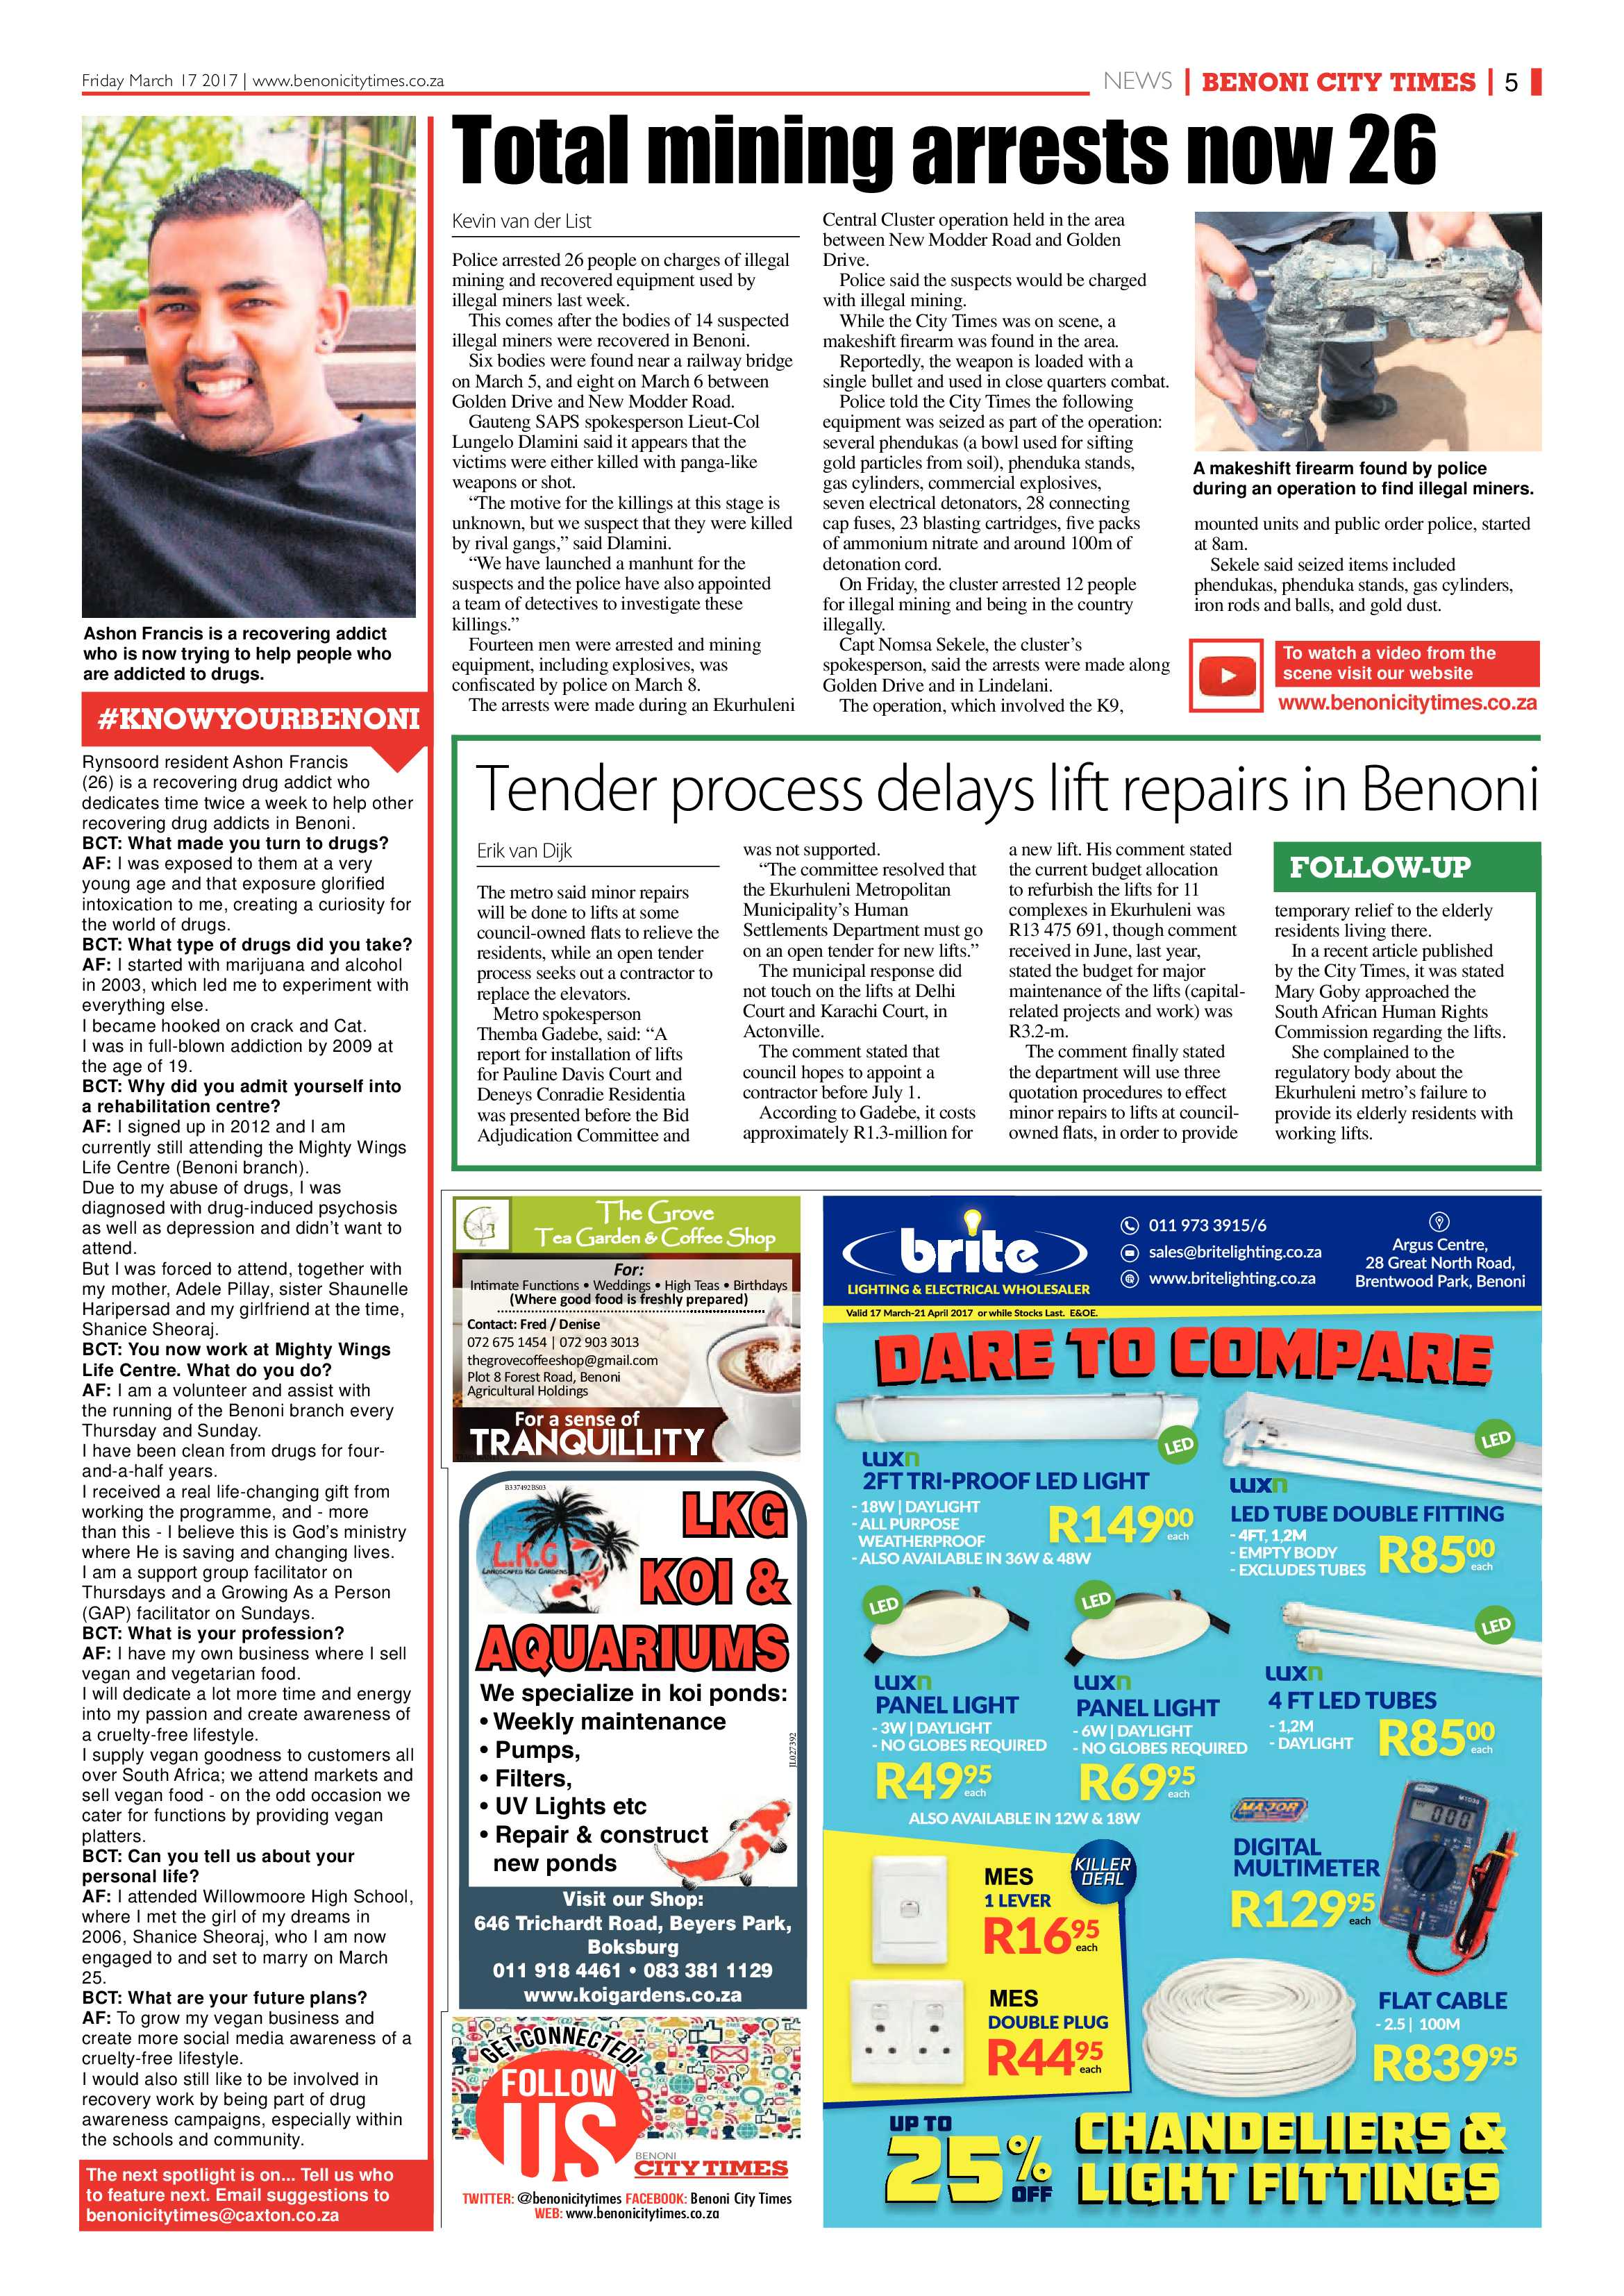 benoni-city-times-16-march-2017-epapers-page-5